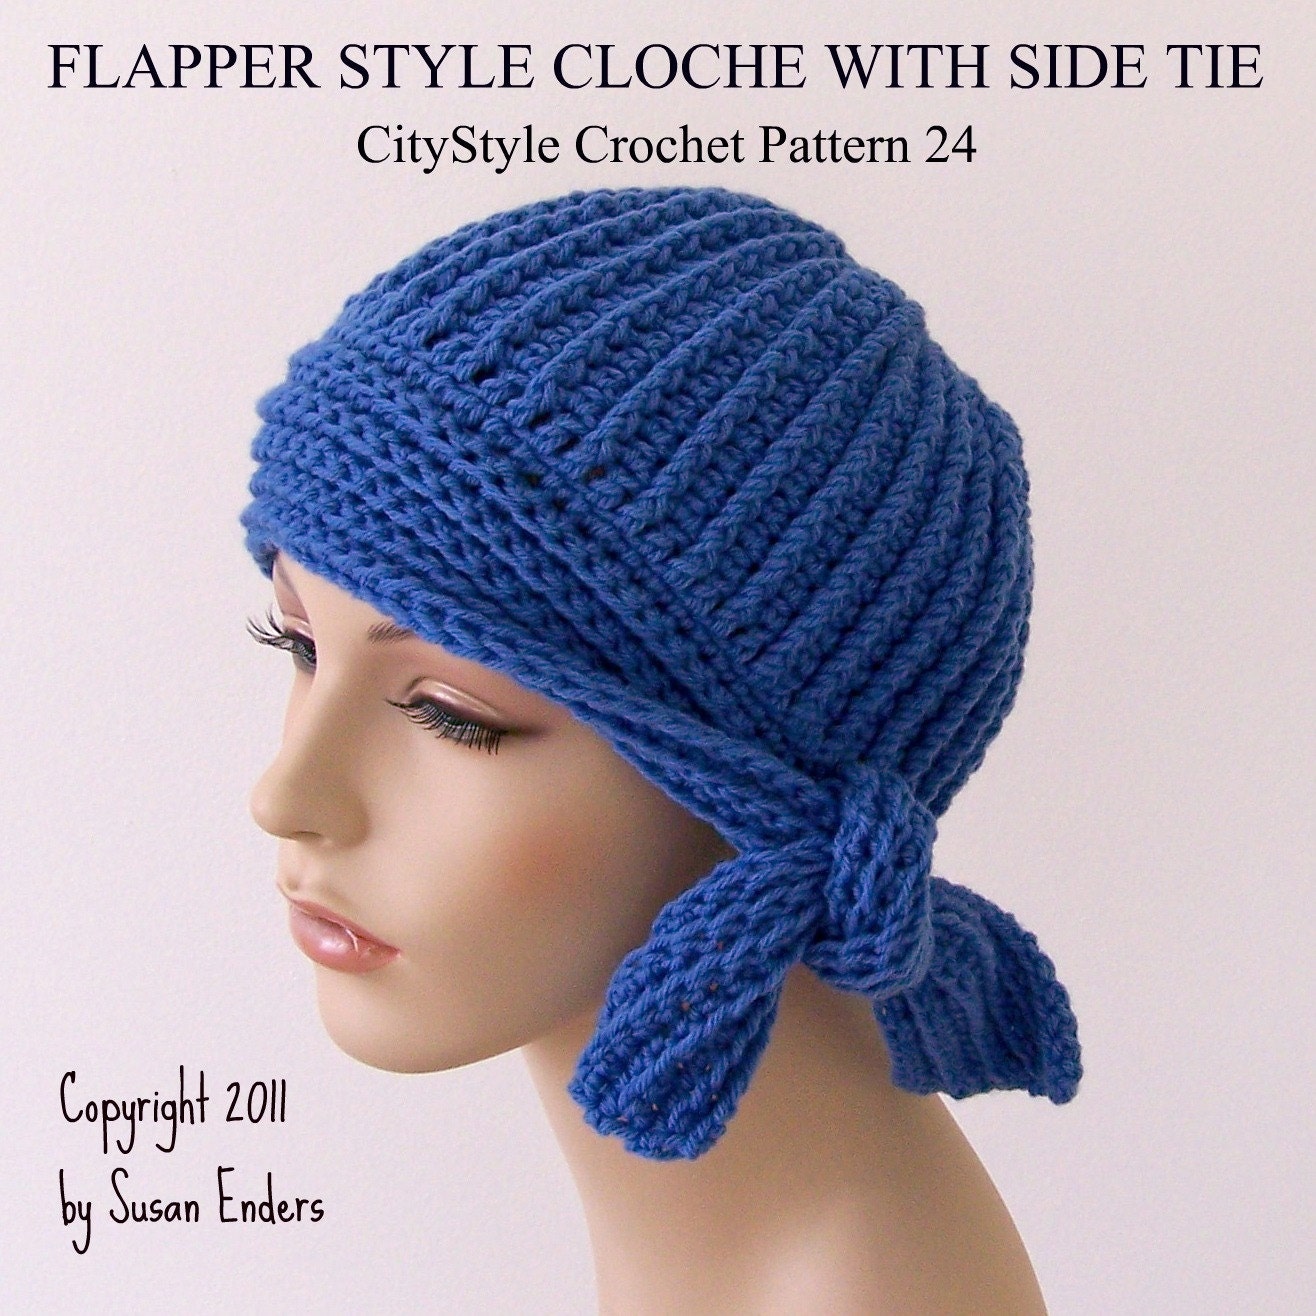 Crochet Pattern Hat Flapper Style Cloche with Side Tie Easy